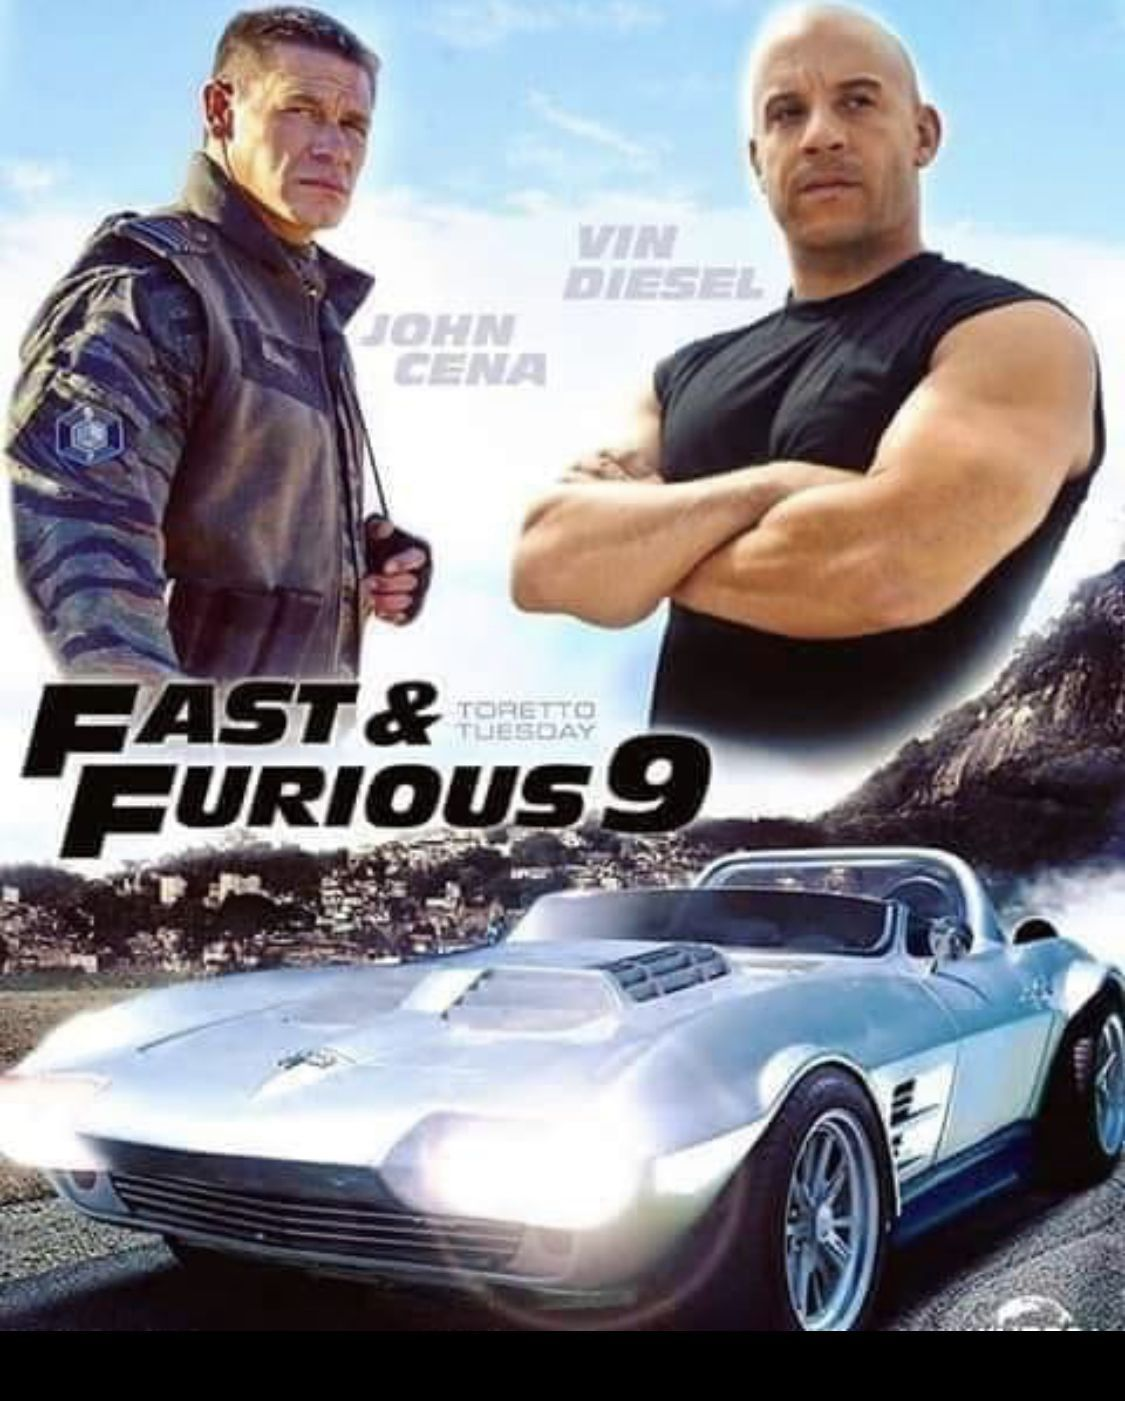 Fast Furious 9 In 2020 Download Free Movies Online Full Movies Online Free Free Movies Online